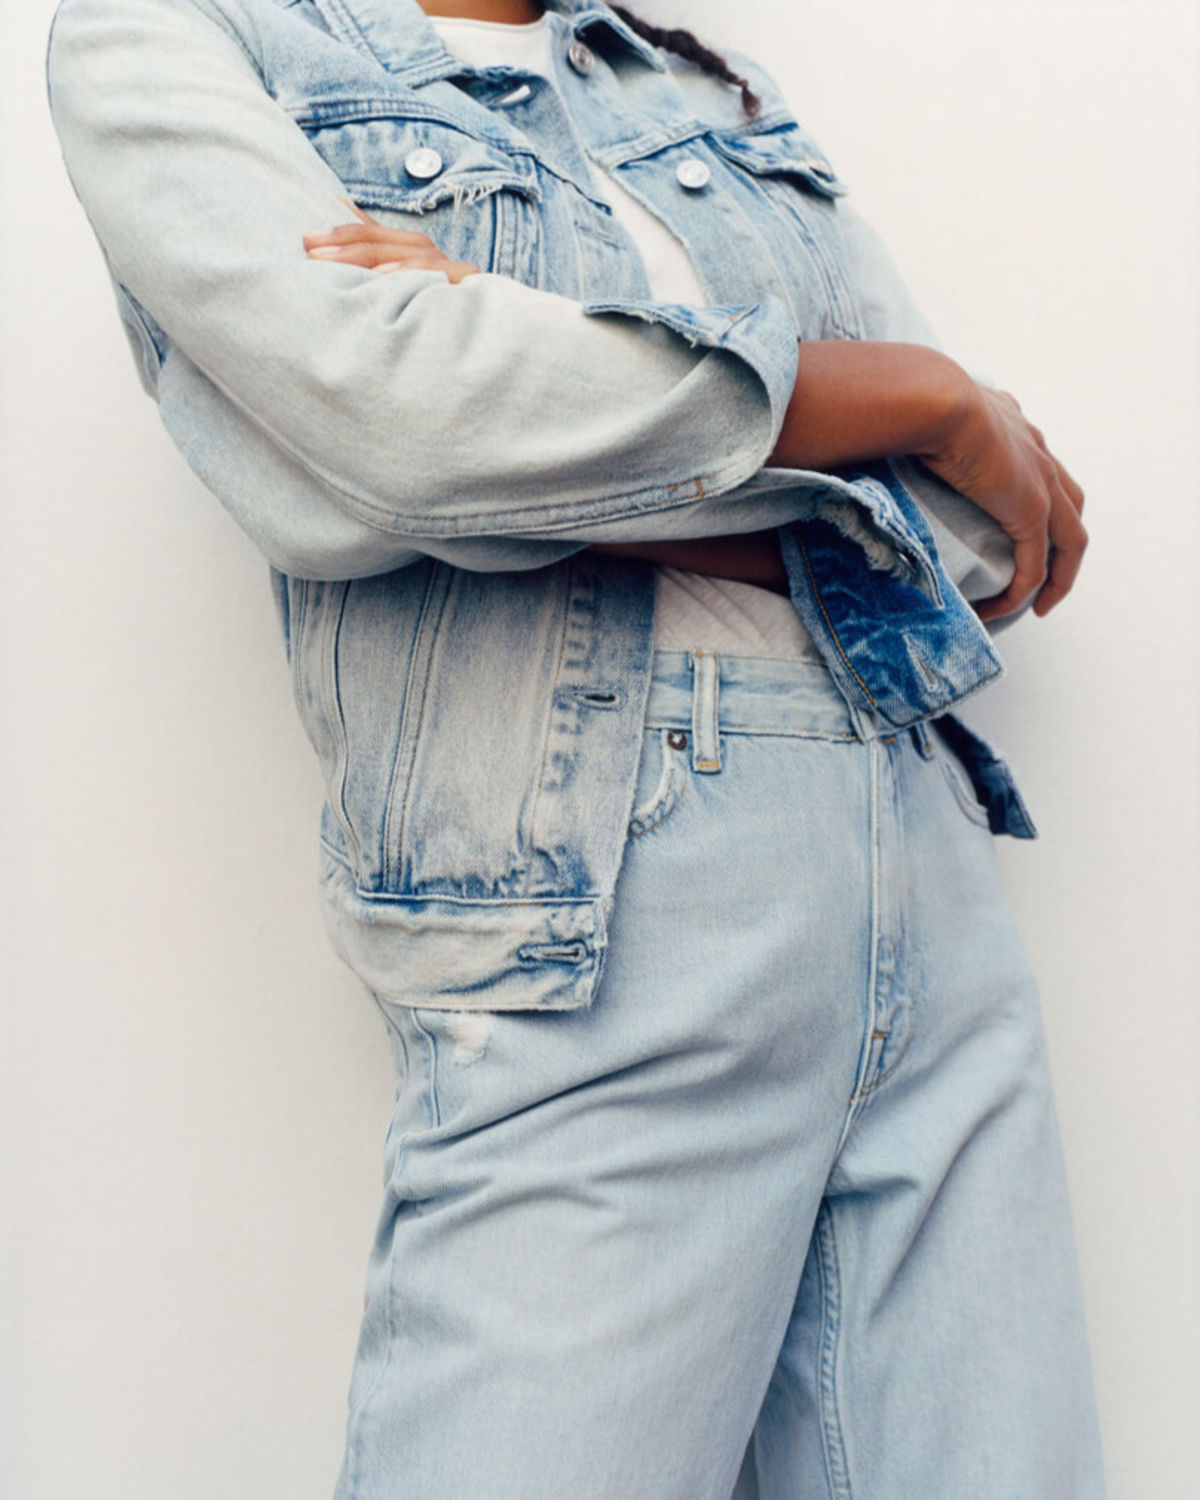 Cropped image of a woman wearing a light denim jacket with a white t-shirt and light denim jeans.